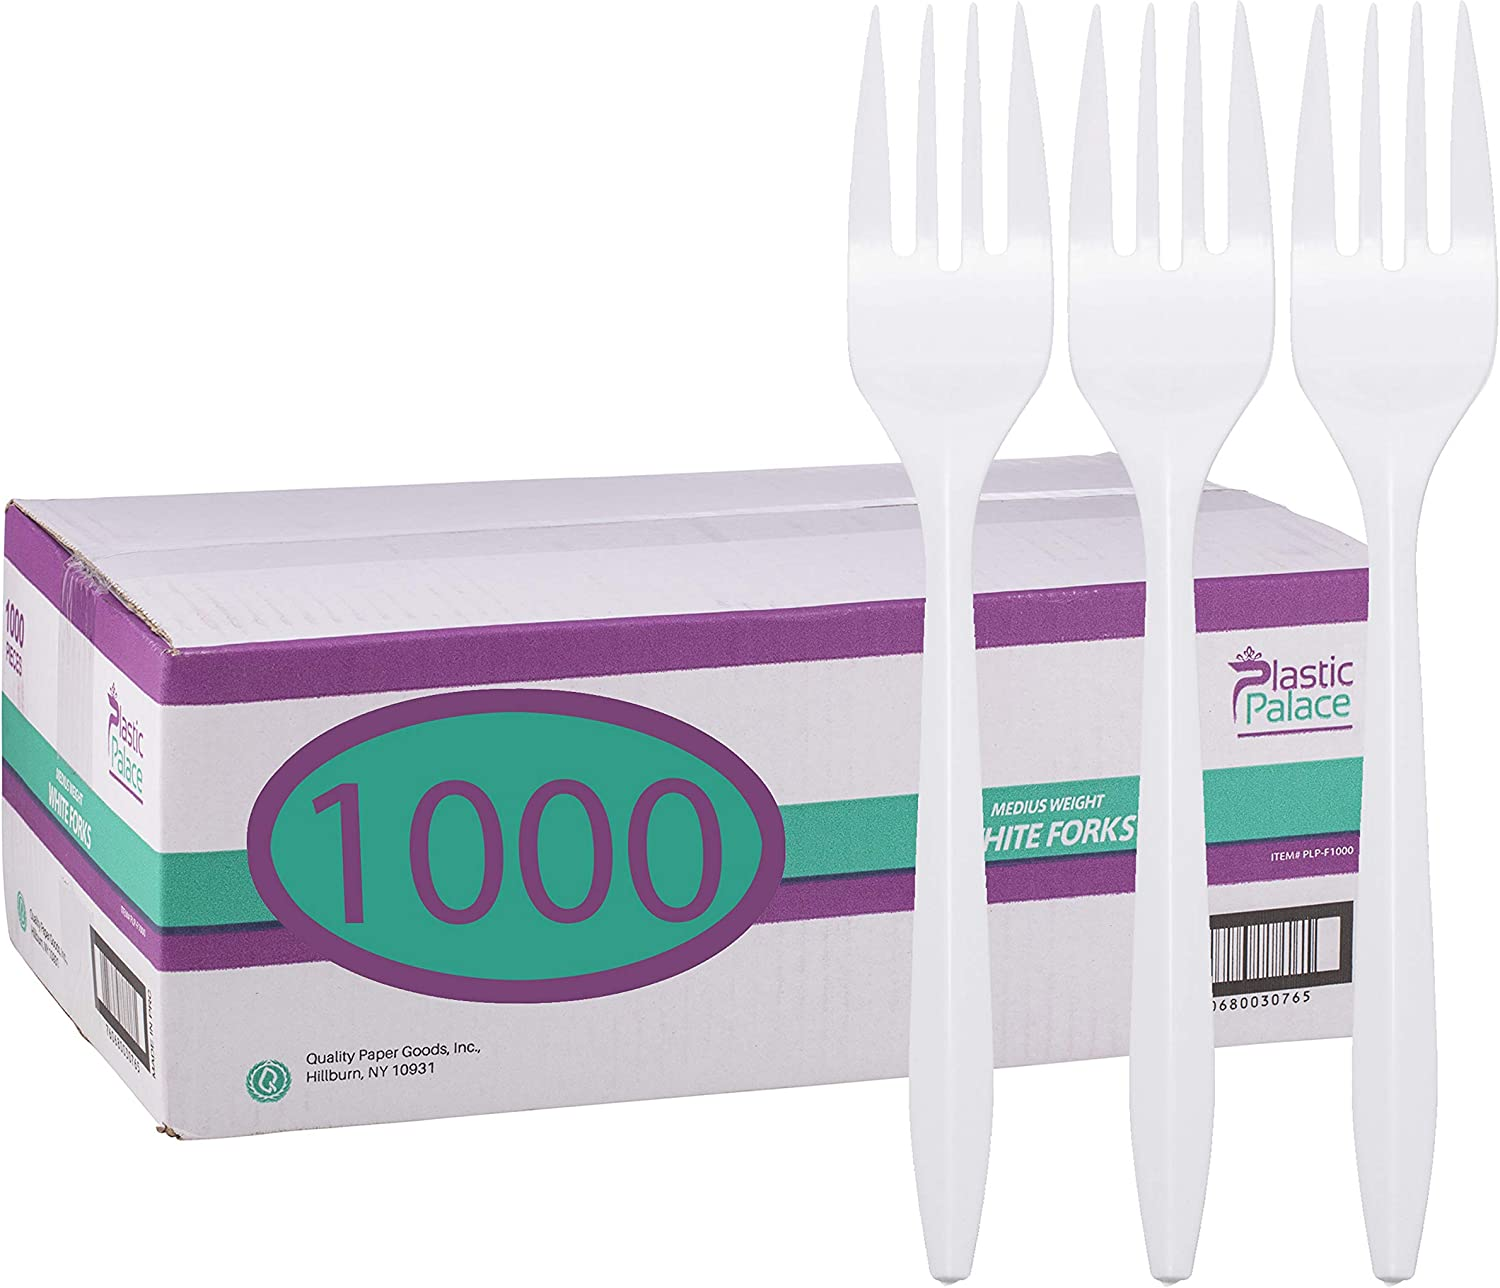 Plastic Palace MAIN-96620 White Disposable Plastic Forks in Bulk-Medium Weight (1000 Count)